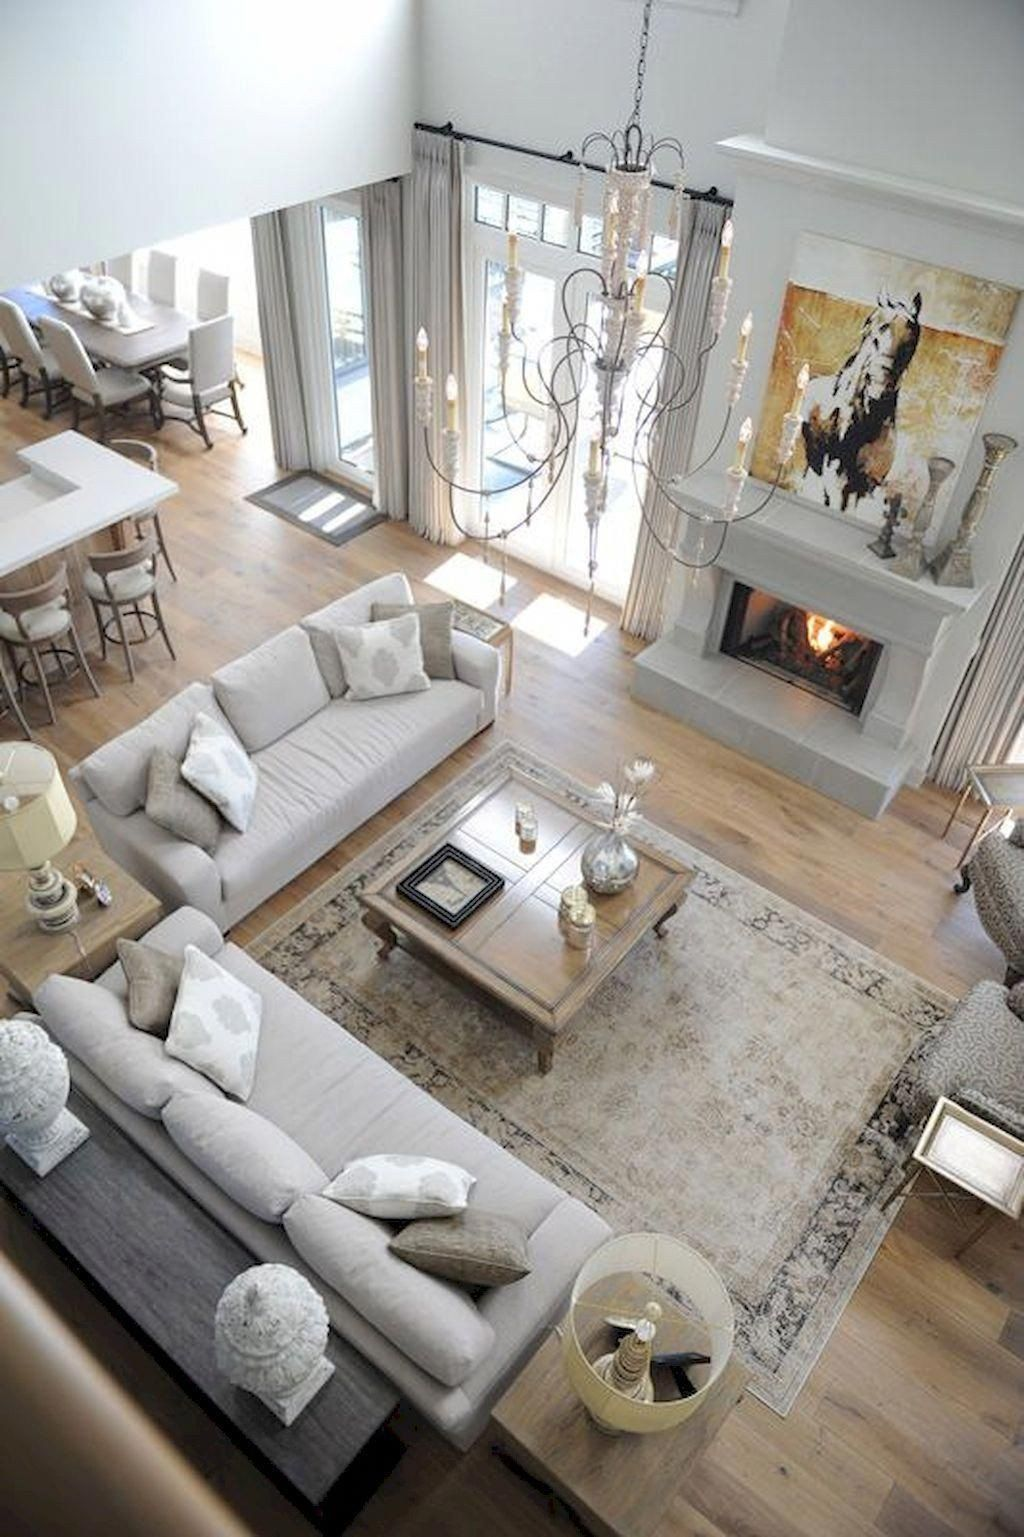 Small Scale Furniture Living Room Remodellivingroom In 2020 Livingroom Layout Living Room Furniture Arrangement Living Room With Fireplace #small #scale #furniture #living #room